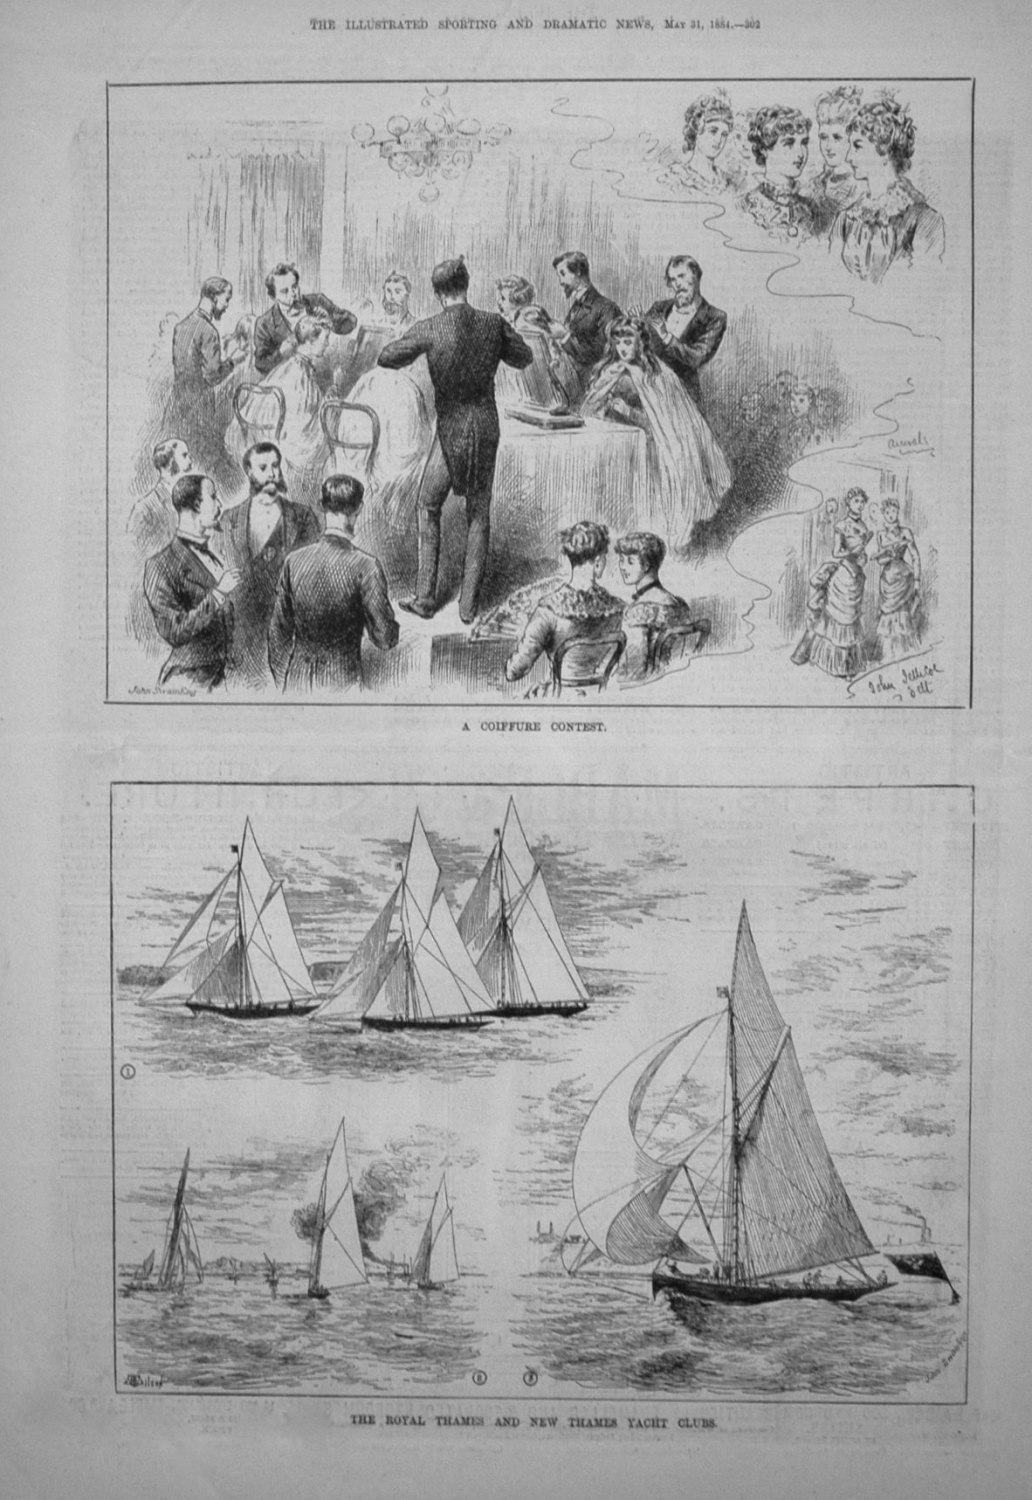 The Royal Thames and New Thames Yacht Clubs. 1884